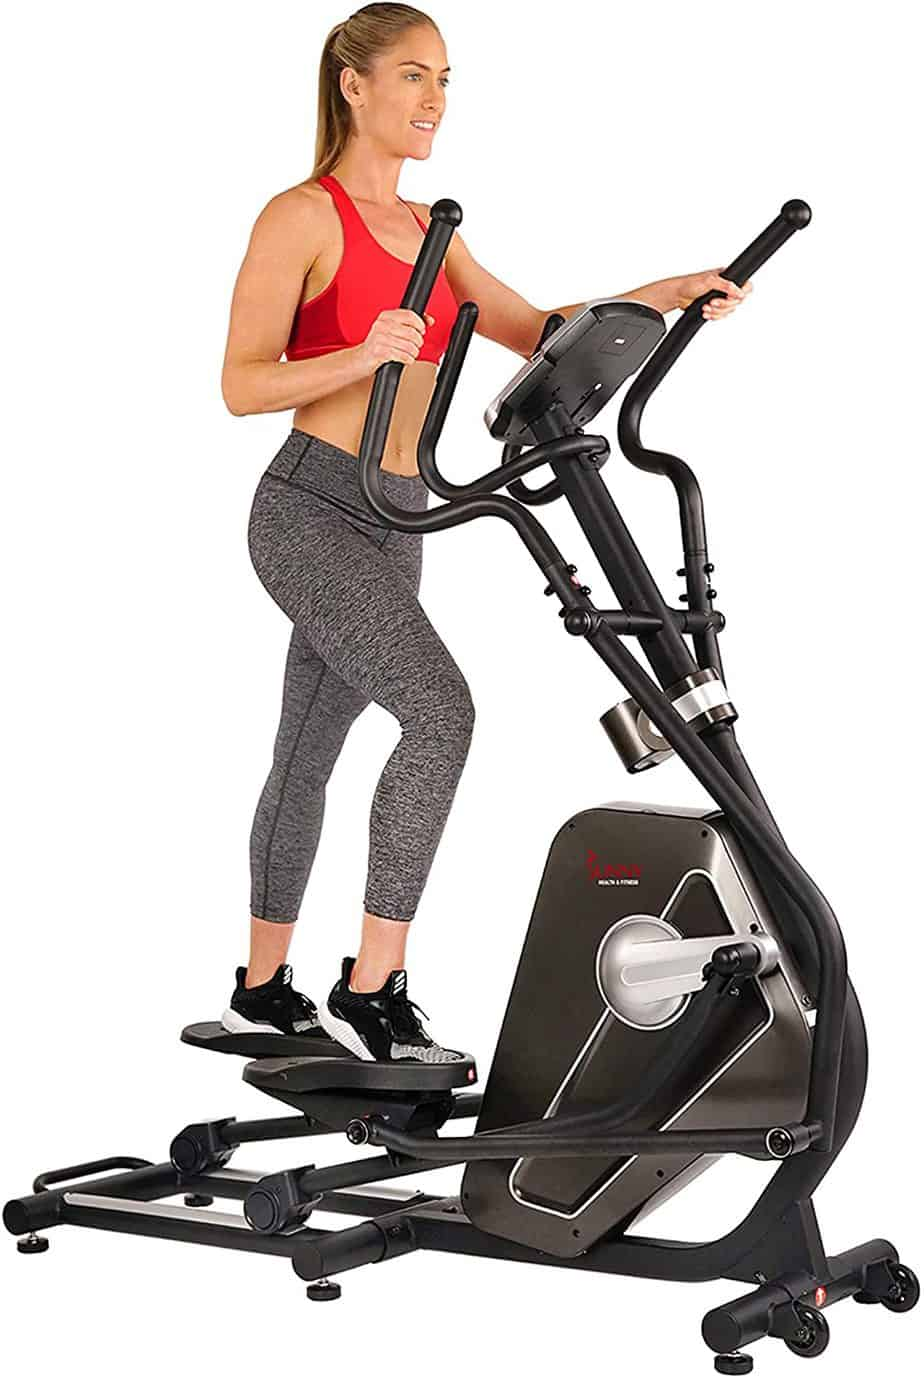 A lady is working out with the Sunny Health and Fitness SF-3862 Elliptical